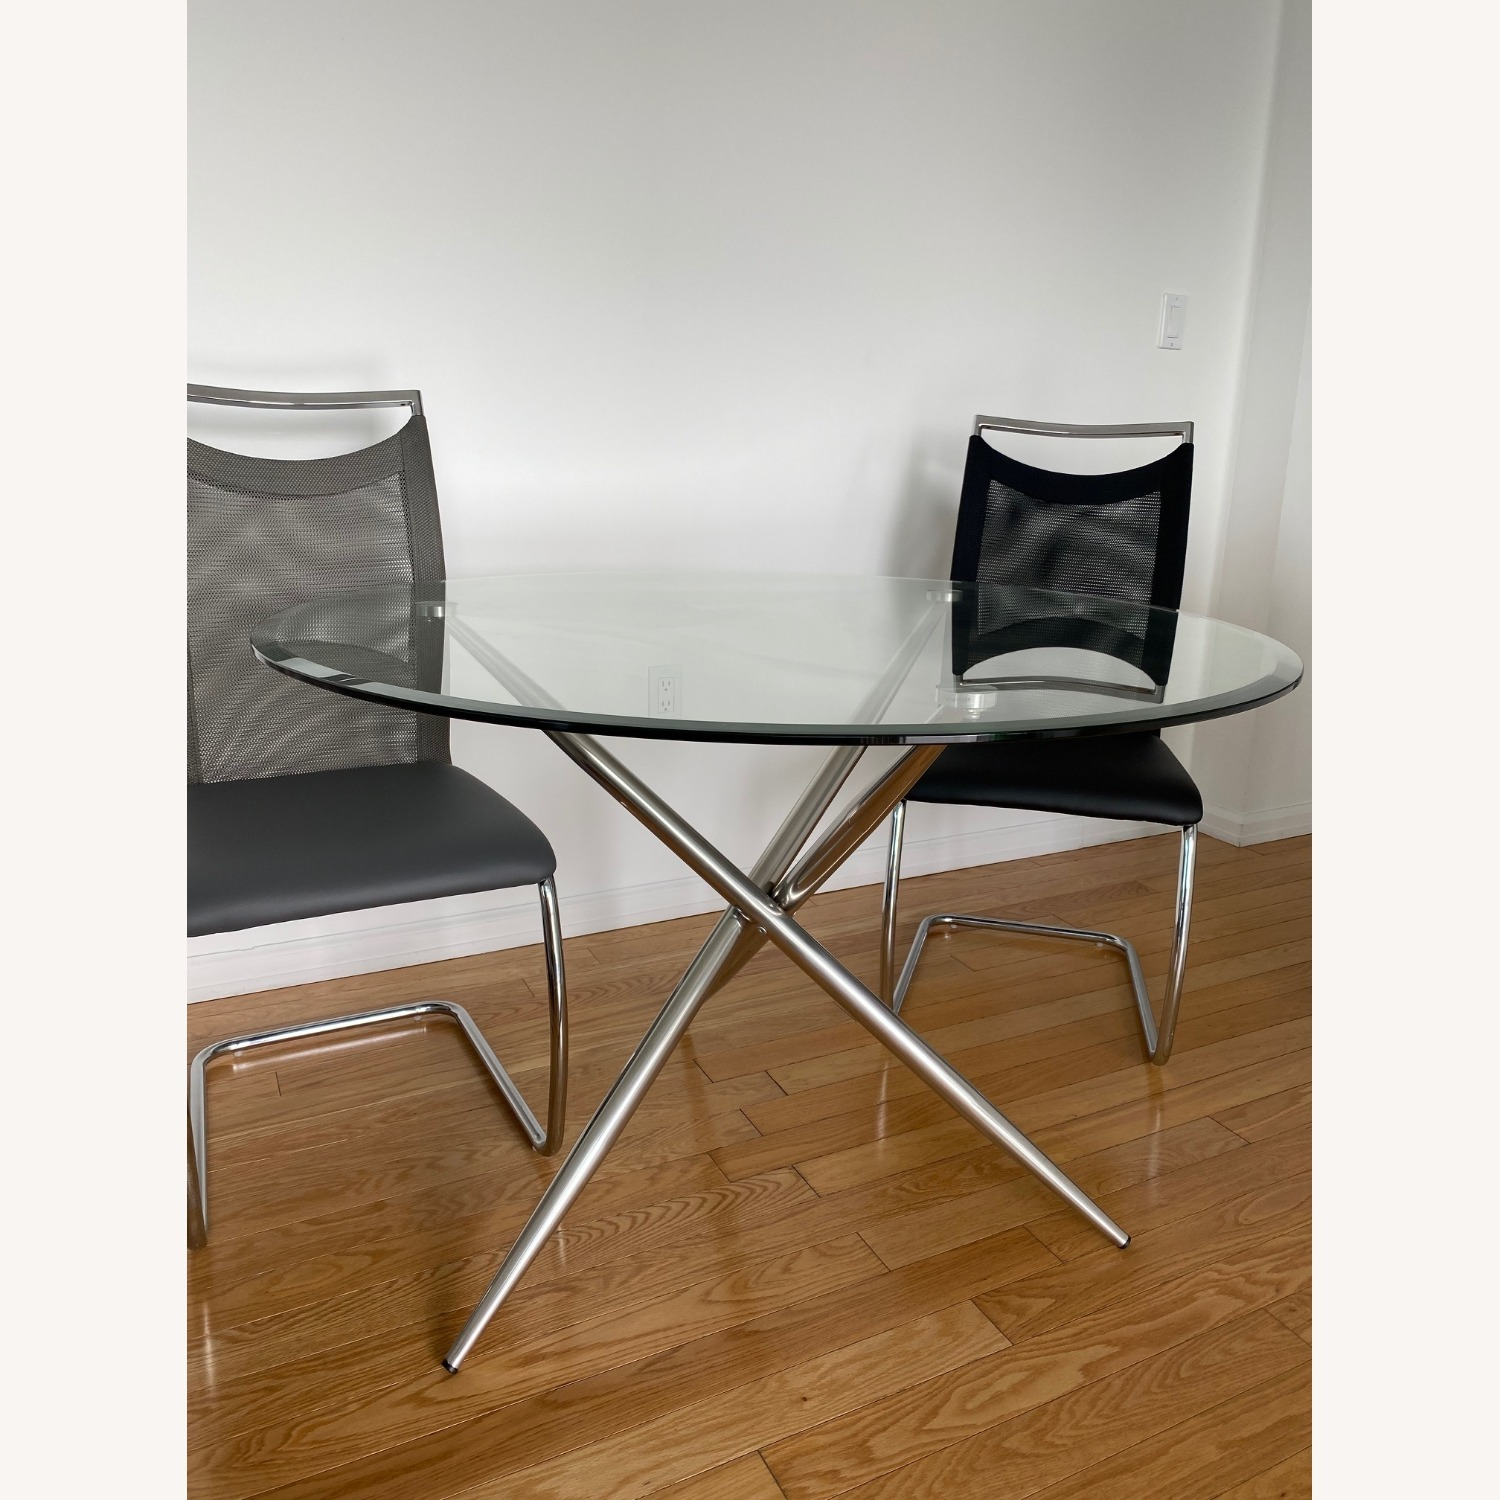 Raymour & Flanigan Adams Glass Dining Set - image-2